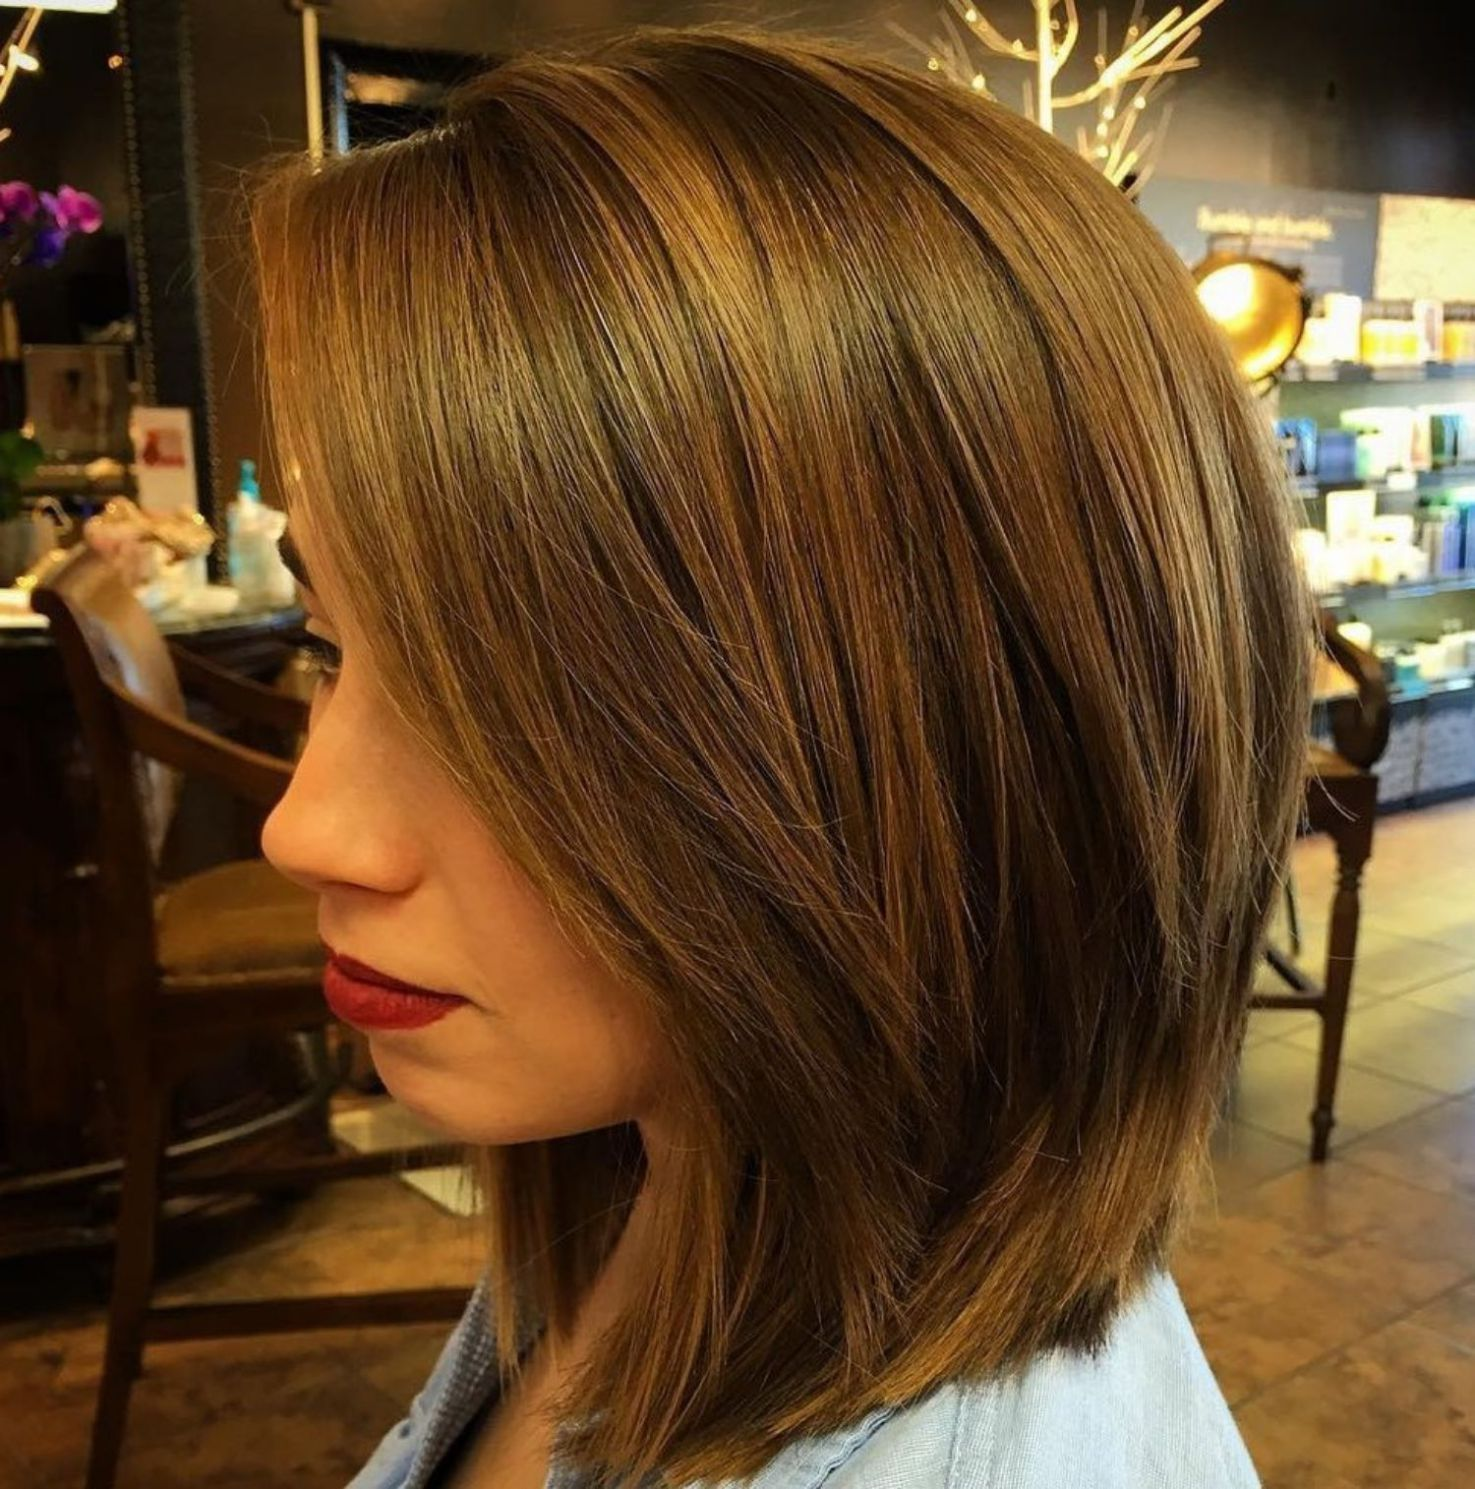 12 Layered Bob Styles: Modern Haircuts with Layers for Any